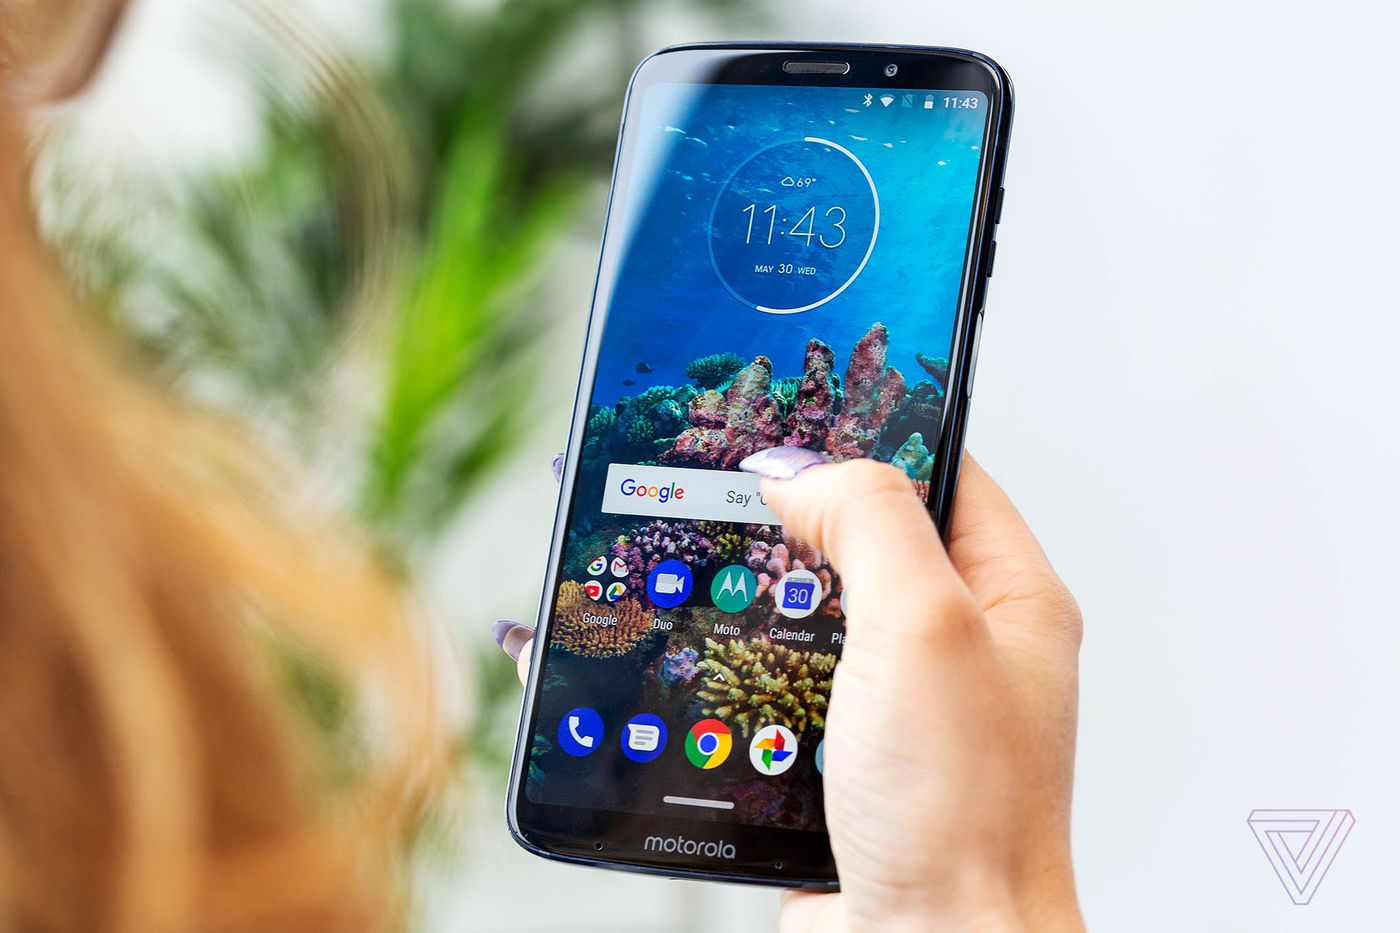 Motorola unveils the Moto Z3 Play with dual cameras and a bigger